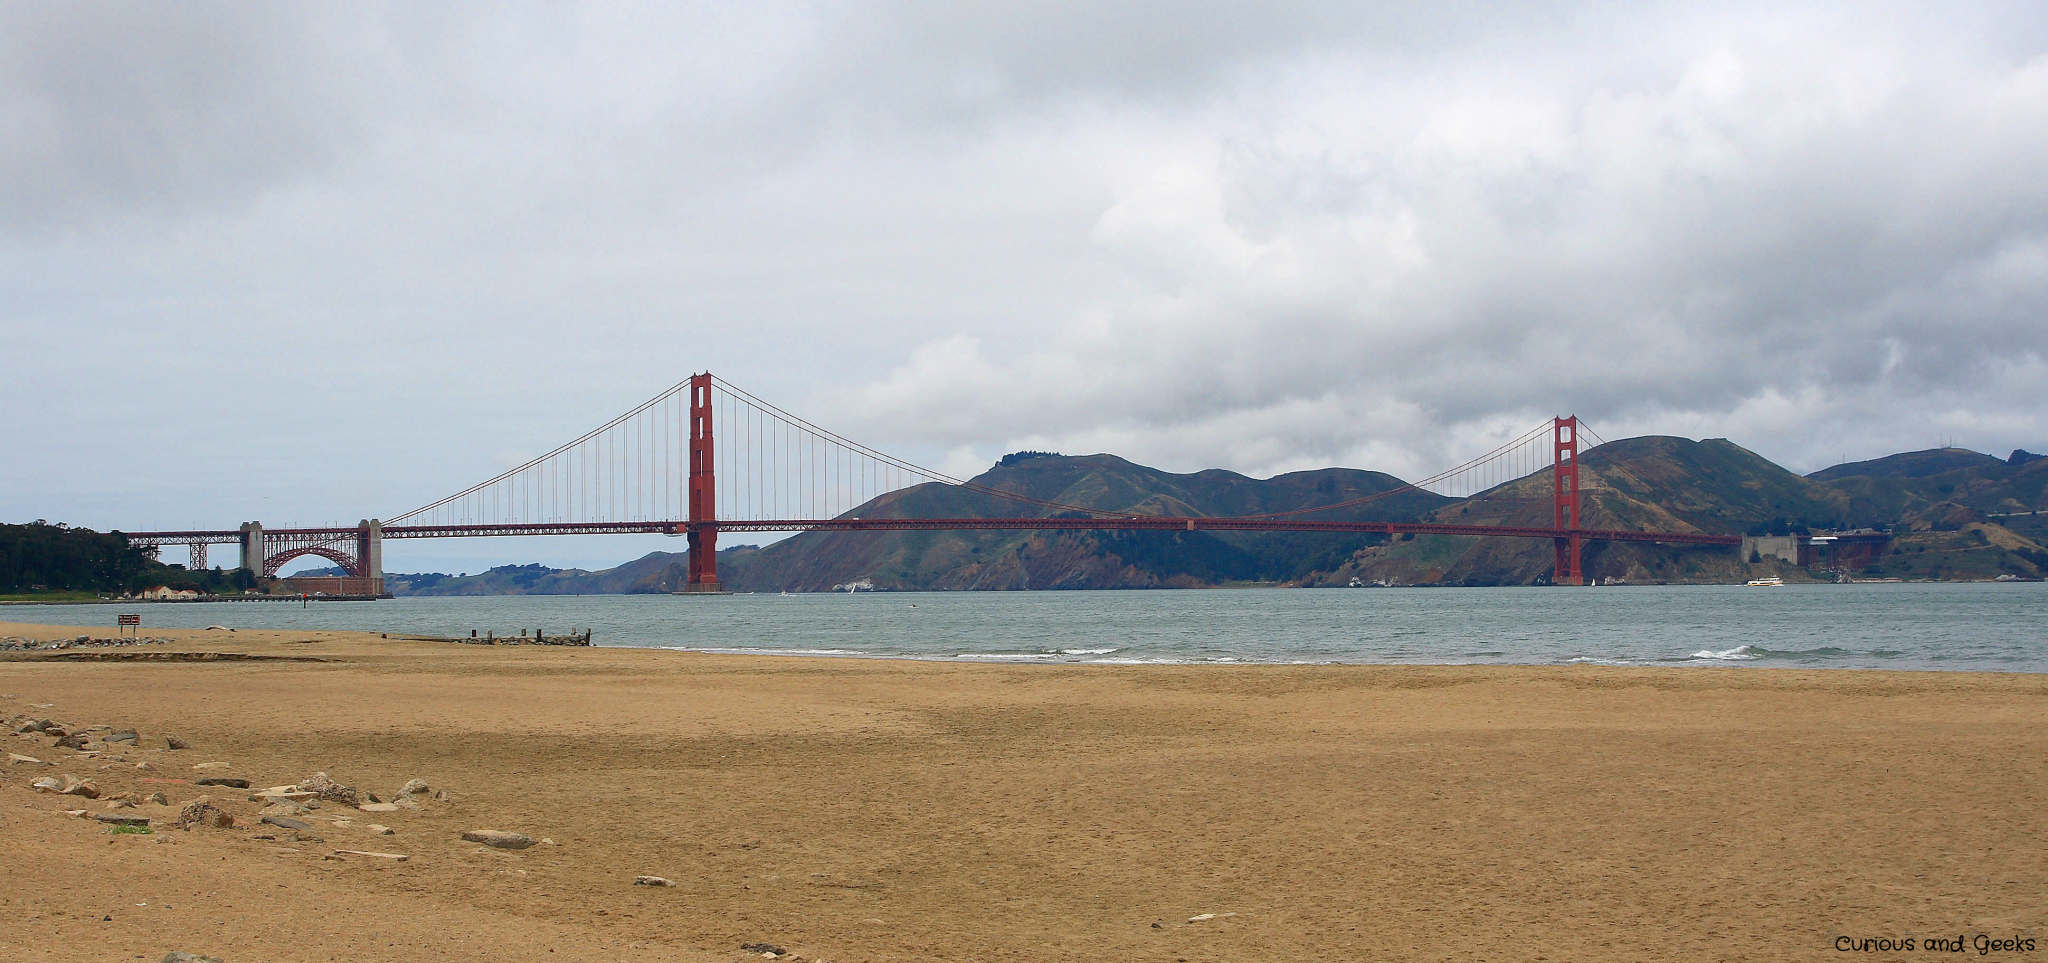 West Coast USA Road trip - The Golden Gate Bridge